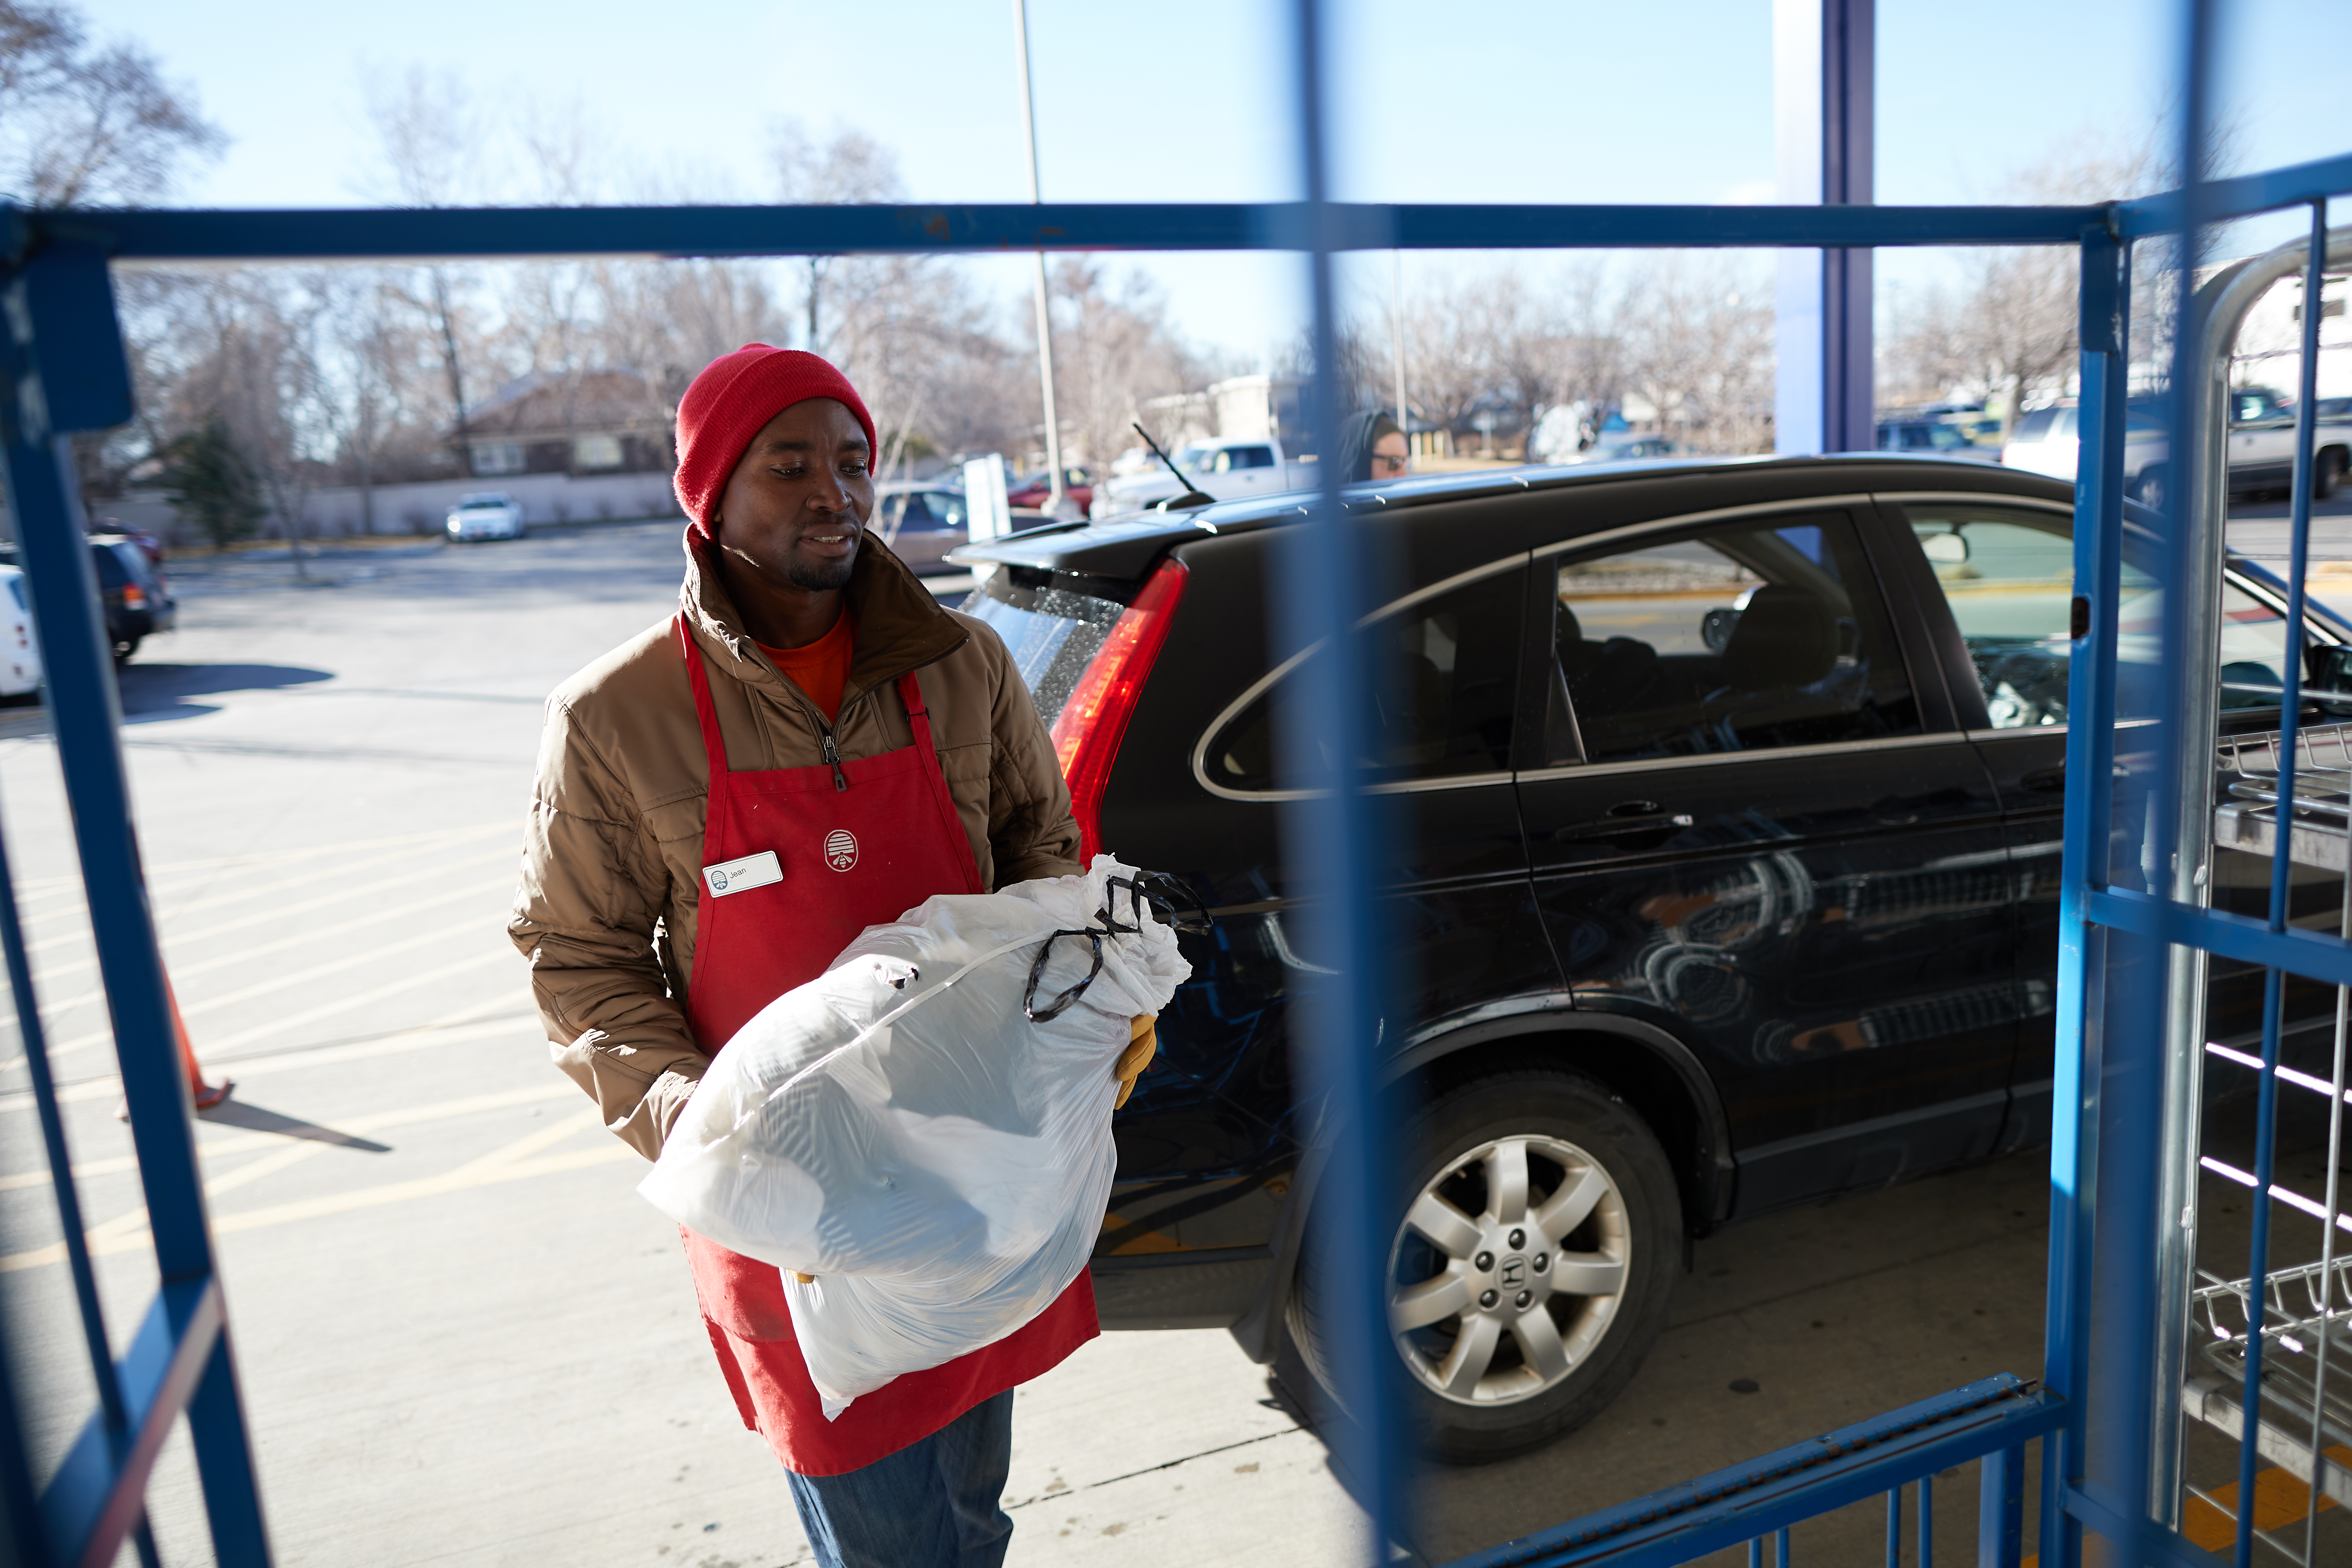 Jean Niyonzima accepts a donation outside a Deseret Industries store.